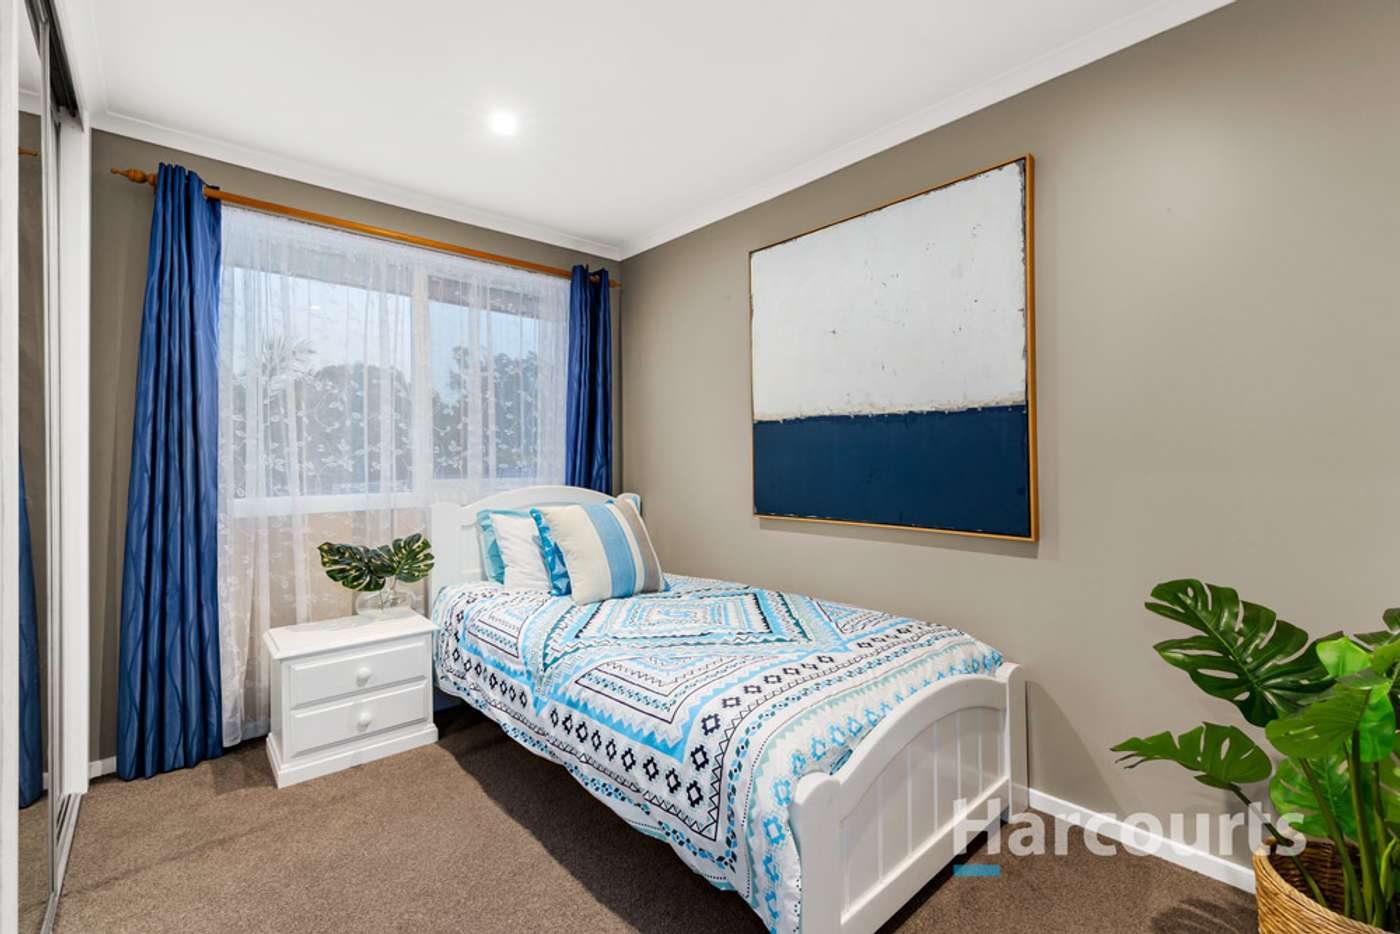 Sixth view of Homely house listing, 67 Raheen Avenue, Wantirna VIC 3152